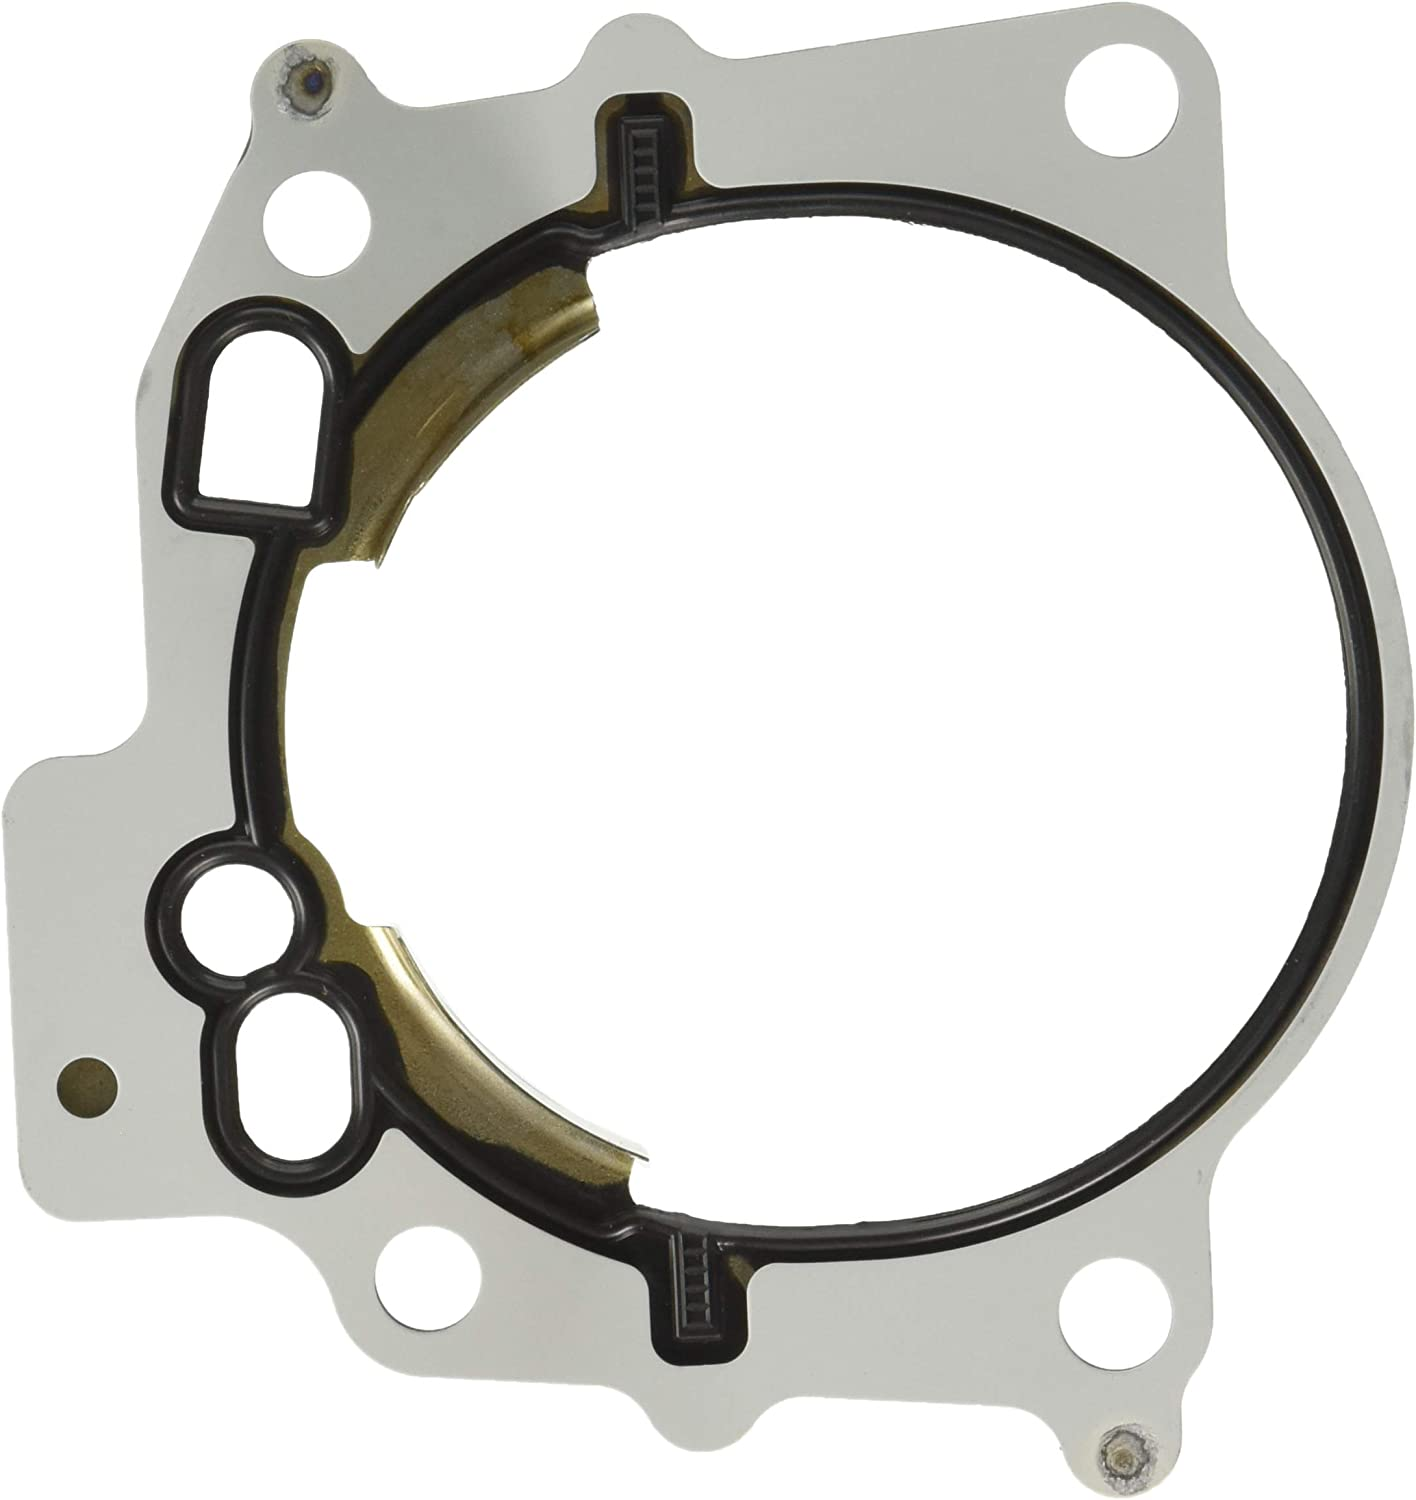 MAHLE Original G31760 Fuel Injection Throttle Body Mounting Gasket